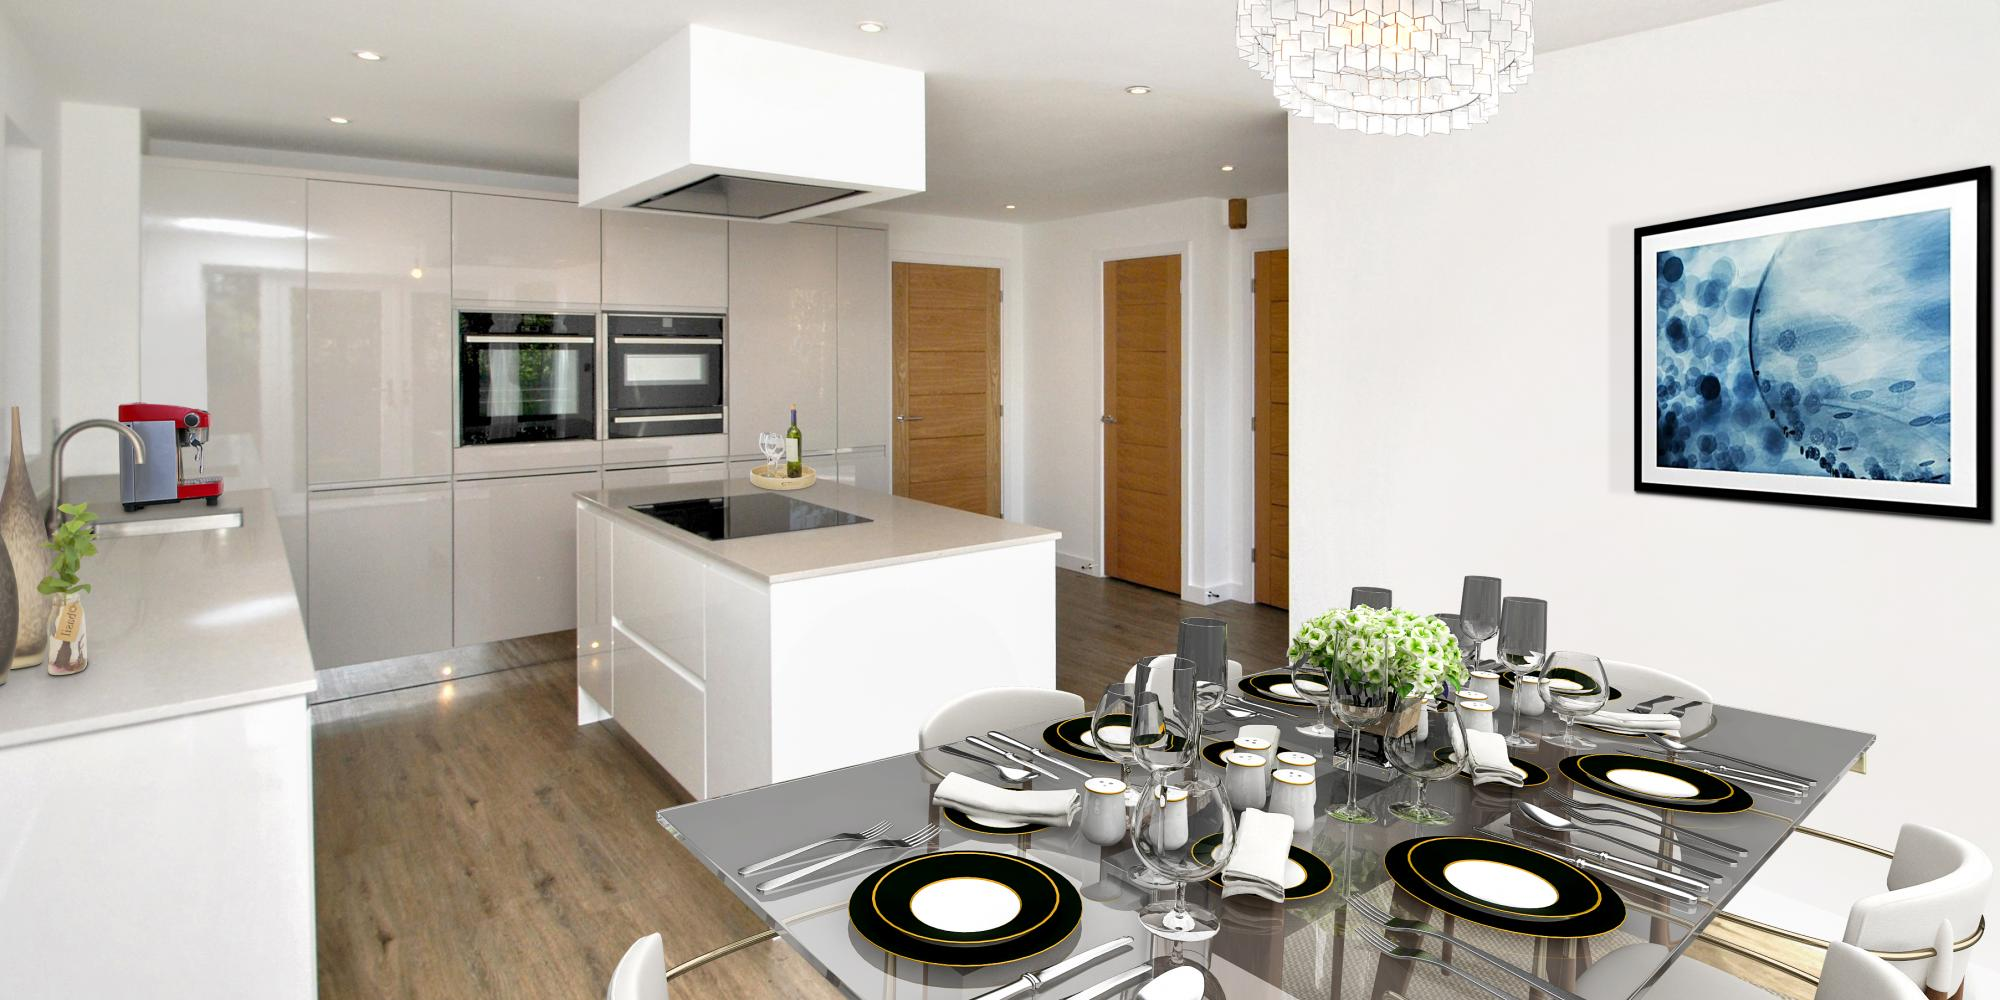 Plot 6 Kitchen The Pines Westward Ho North Devon by Chichester Developments